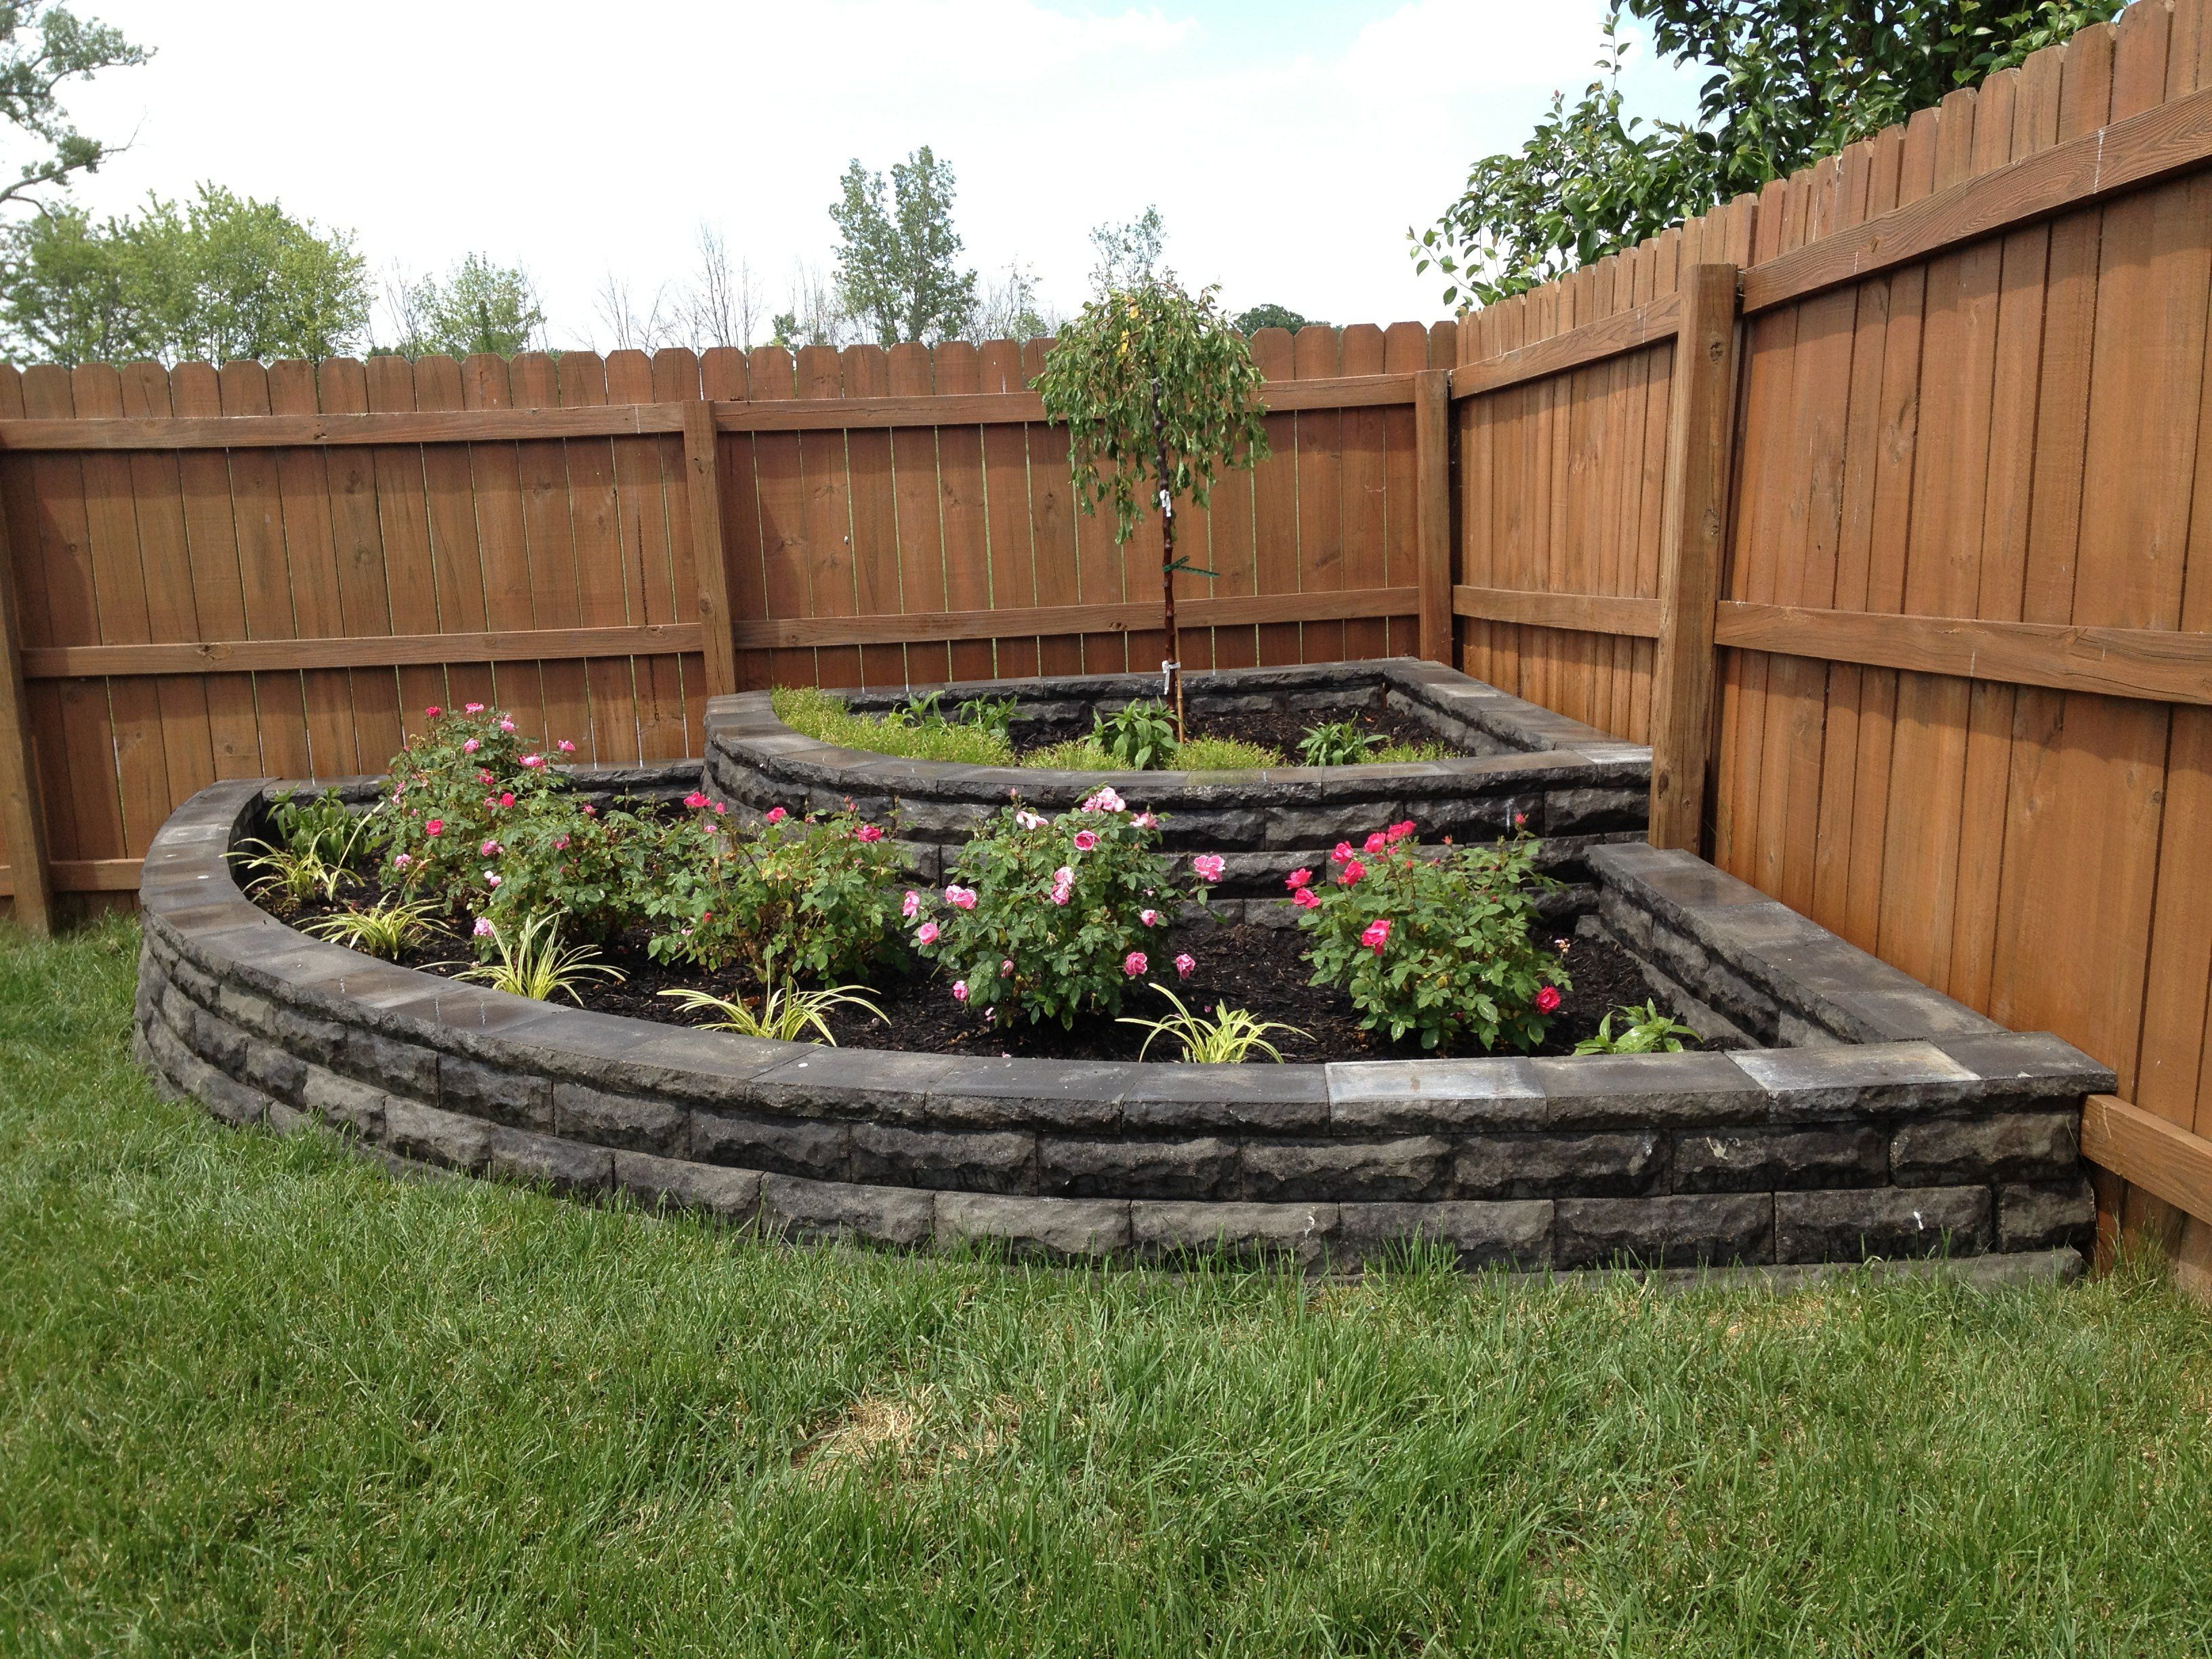 31 Backyard Landscaping Ideas On A Budget 2020 A Nest With A